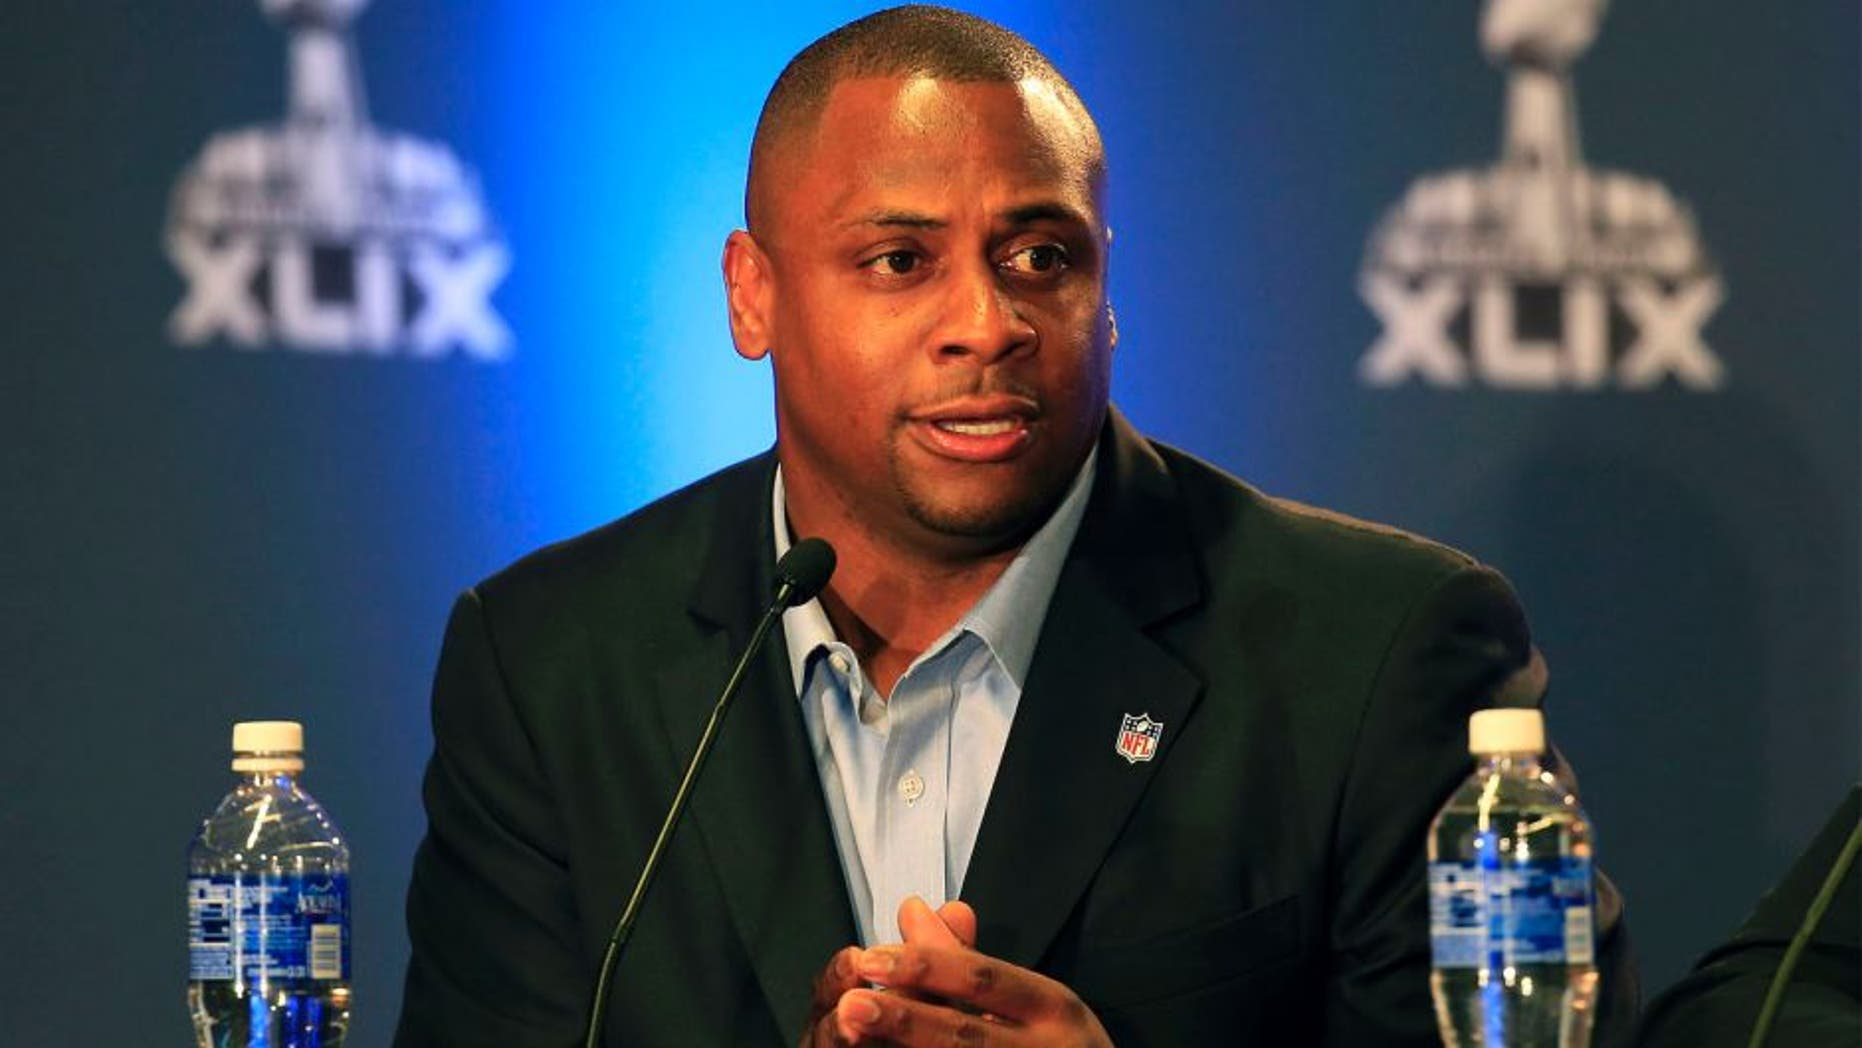 NFL Executive Vice President of Football Operations Troy Vincent attends the Super Bowl XLIX Football Operations Press Conference on January 29, 2015 in Phoenix, Arizona. (Photo by Rob Carr/Getty Images)